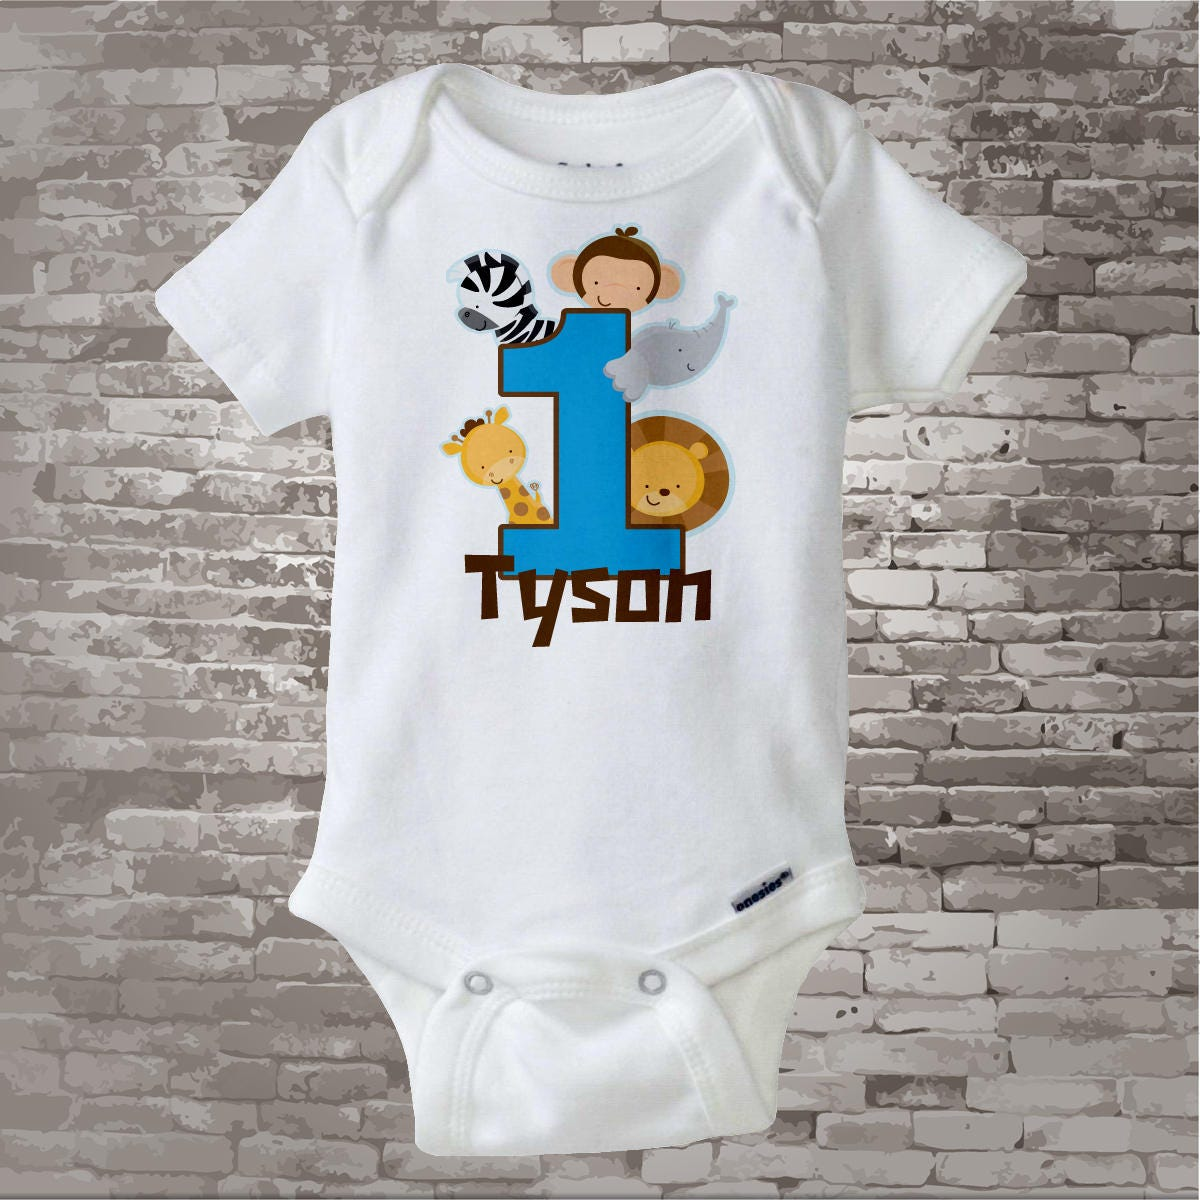 Boys One Year Old Jungle Birthday Shirt Or Onesie With Name 1st Personalized Theme 01222013a